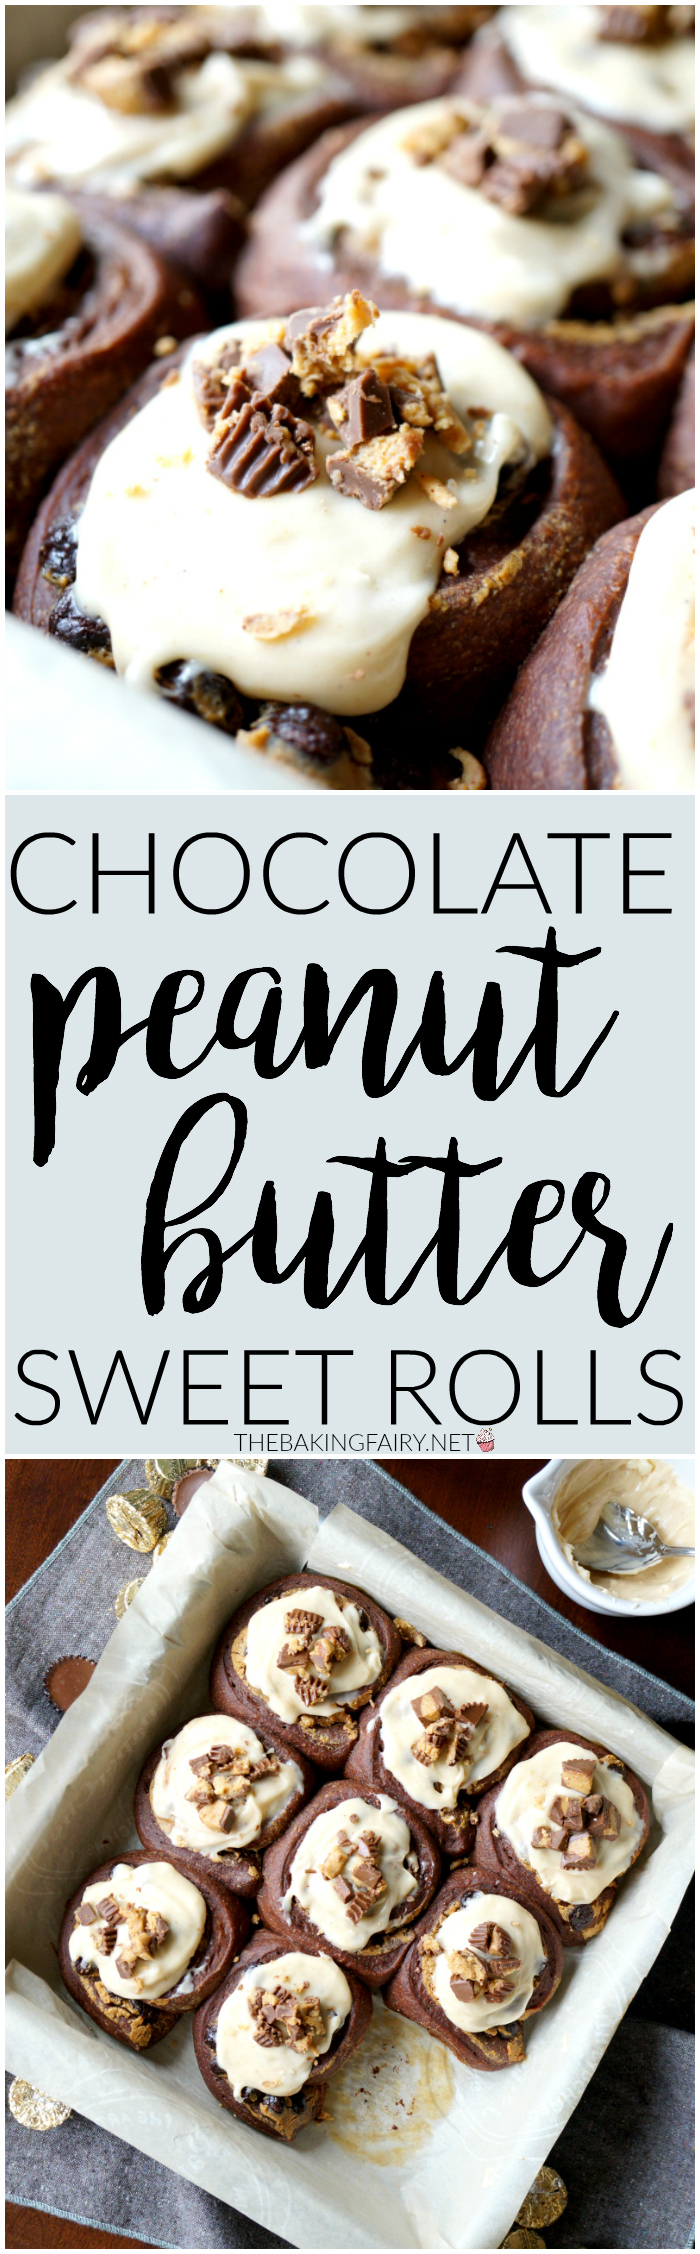 chocolate peanut butter sweet rolls | The Baking Fairy